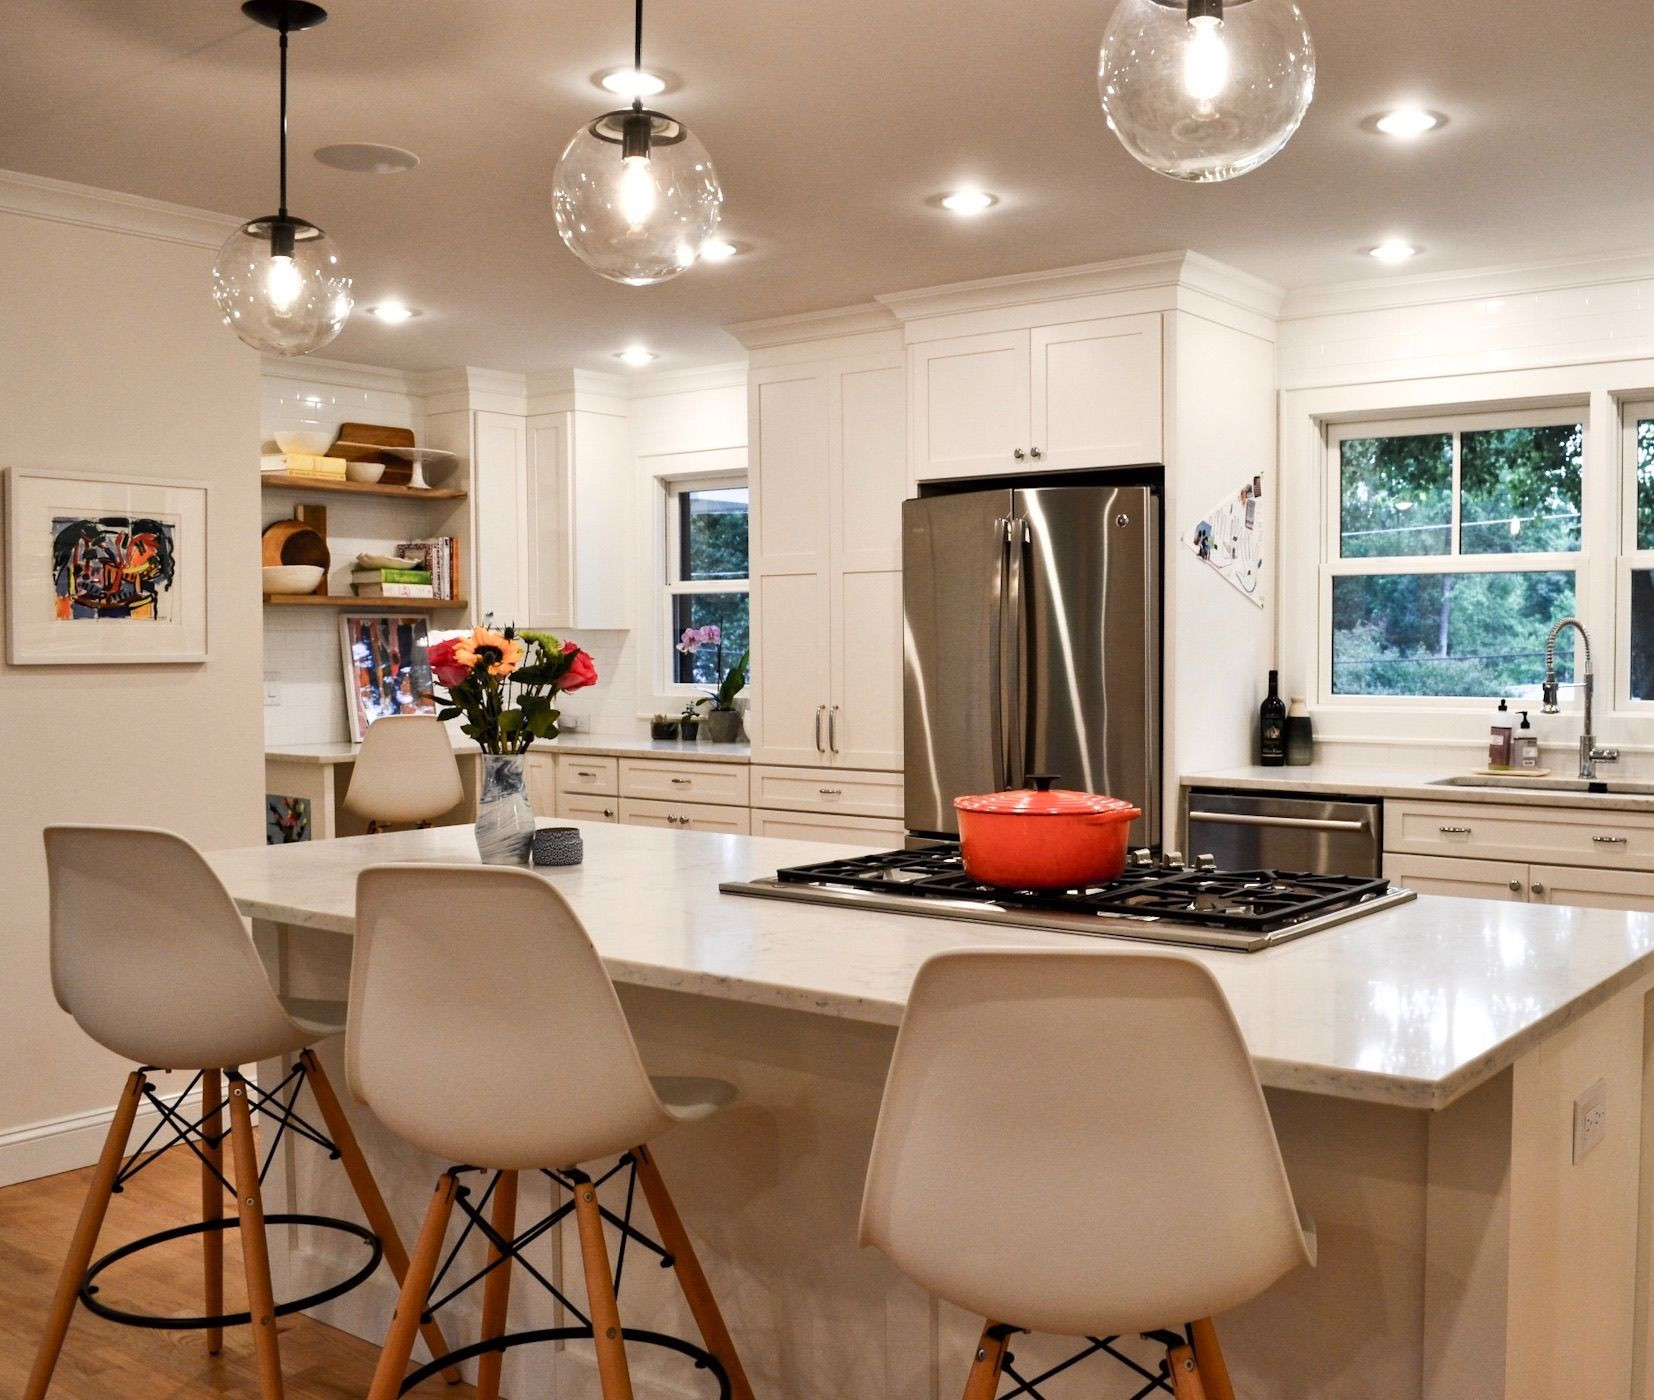 Kitchen Remodeling Raleigh Nc  New kitchen Raleigh NC Tingen Remodeling